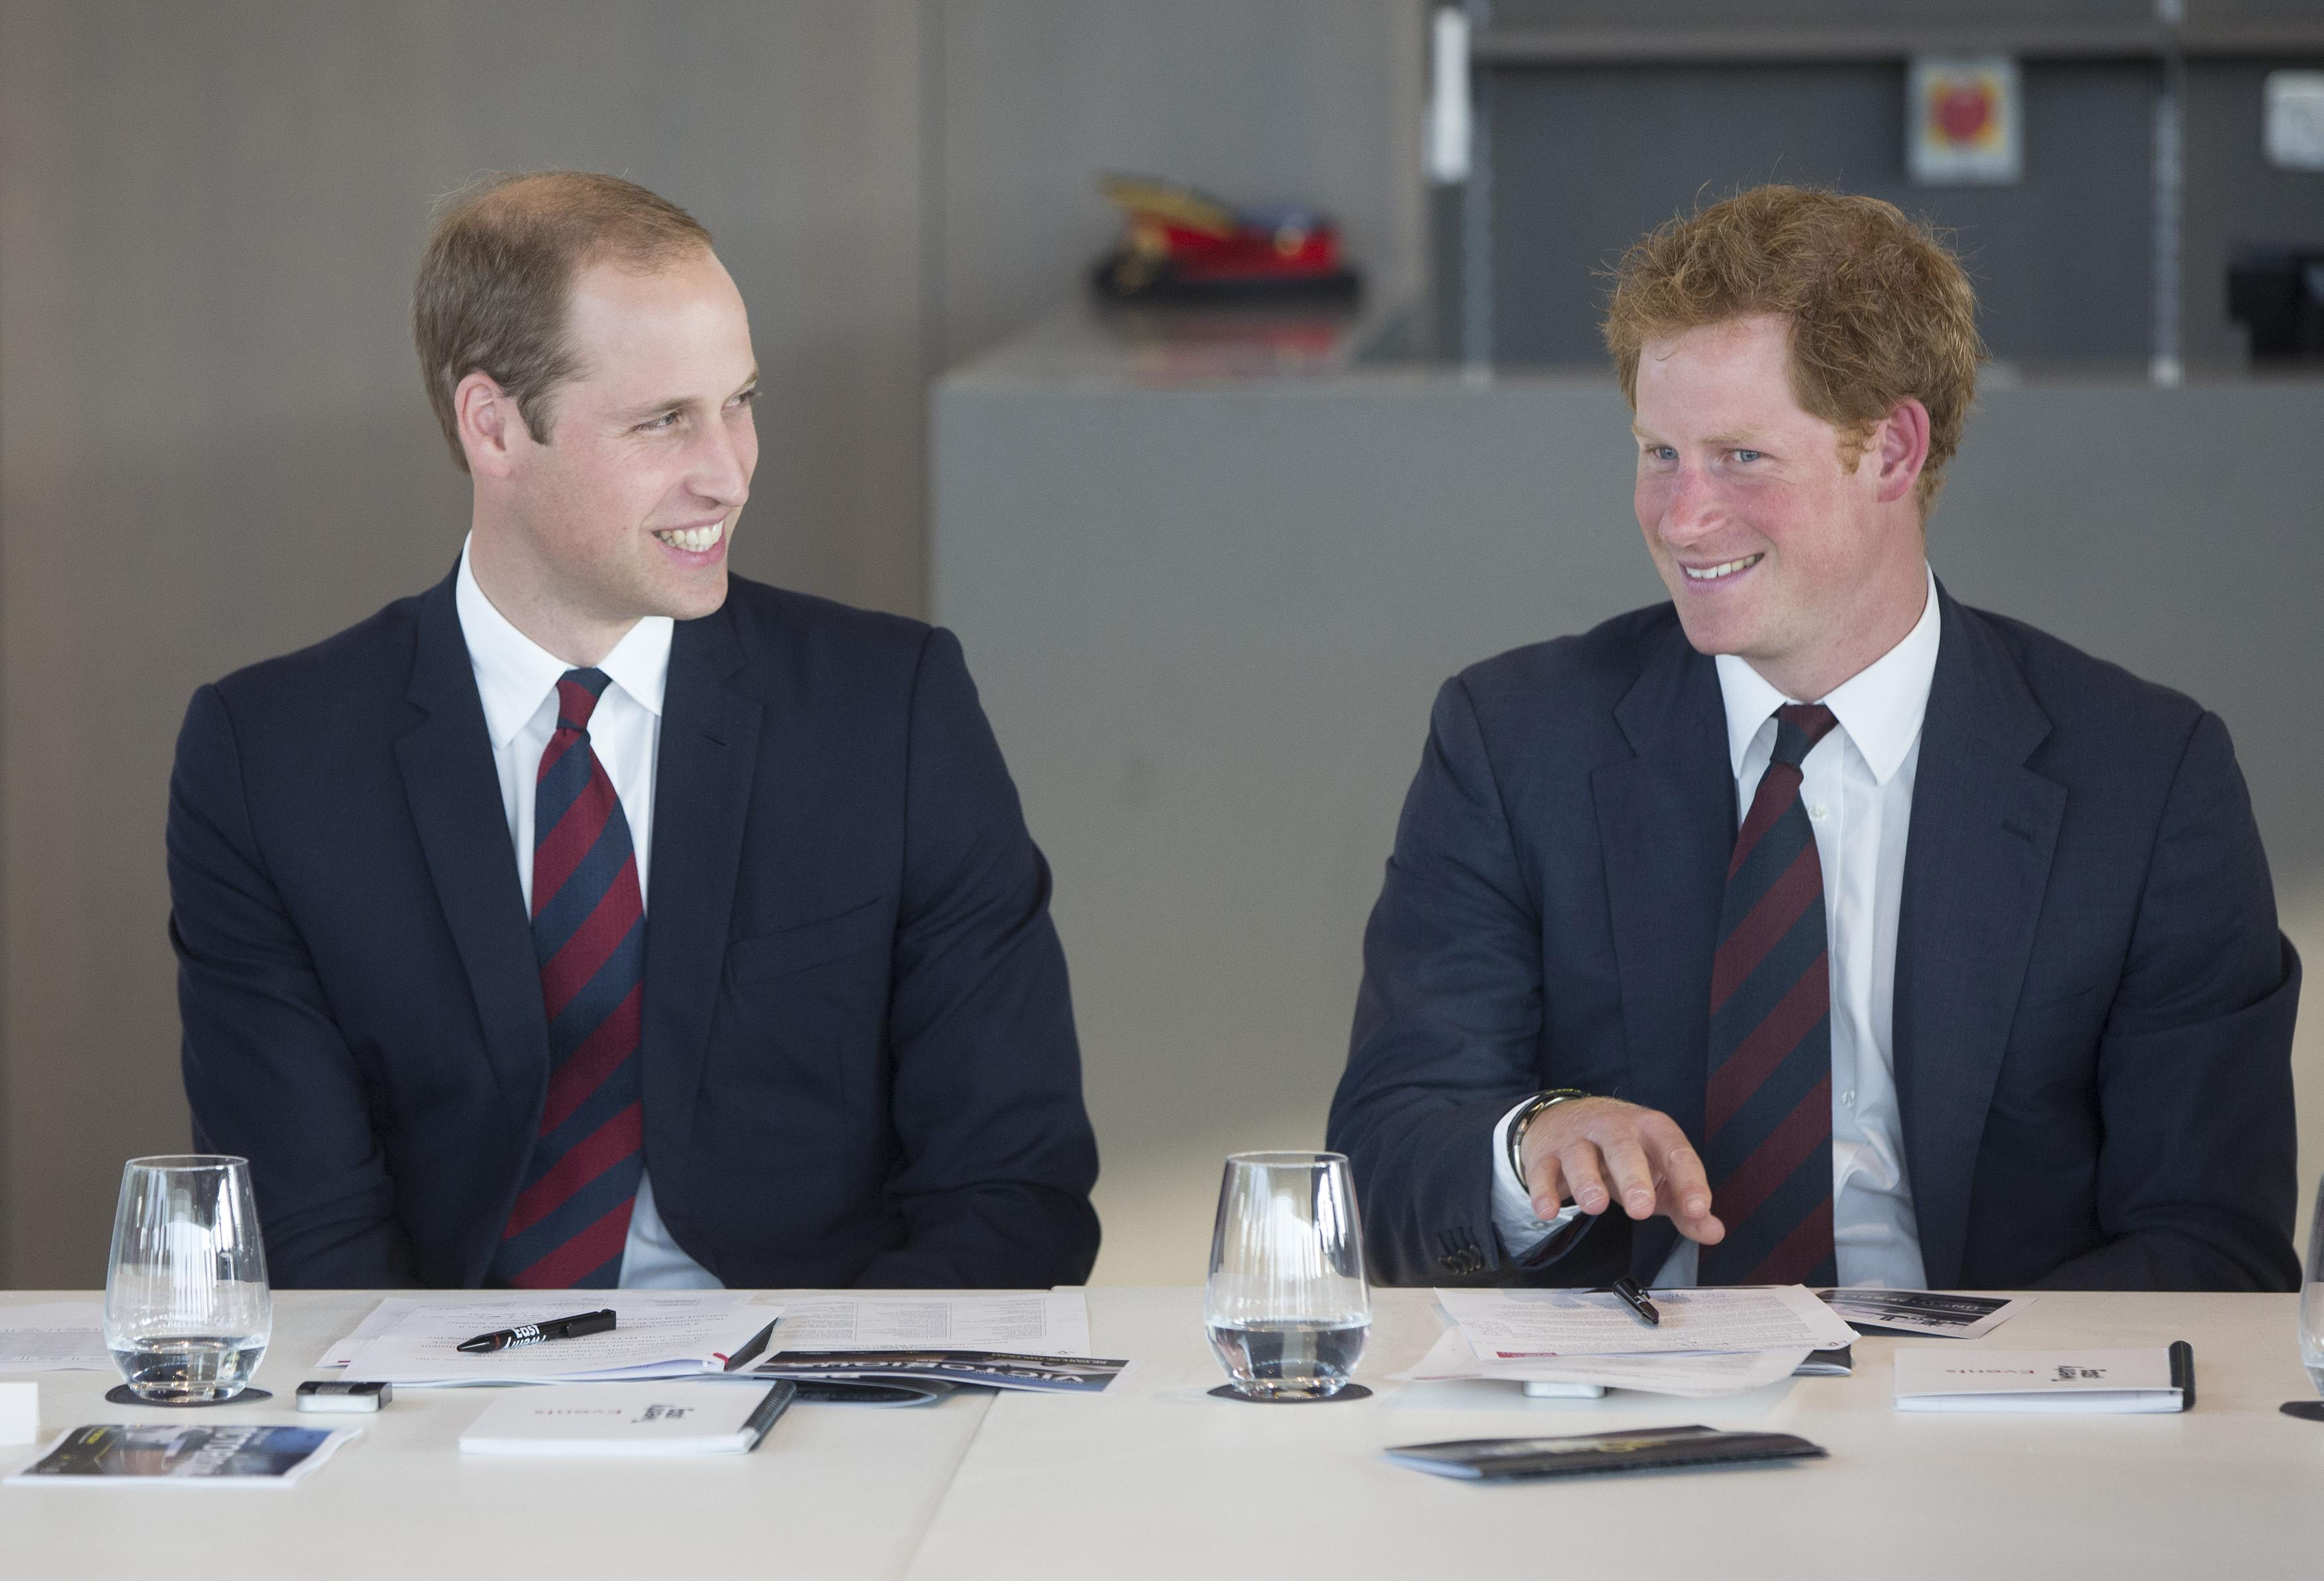 The Duke Of Cambridge And Prince harry Attend Business Leaders Employment Meeting